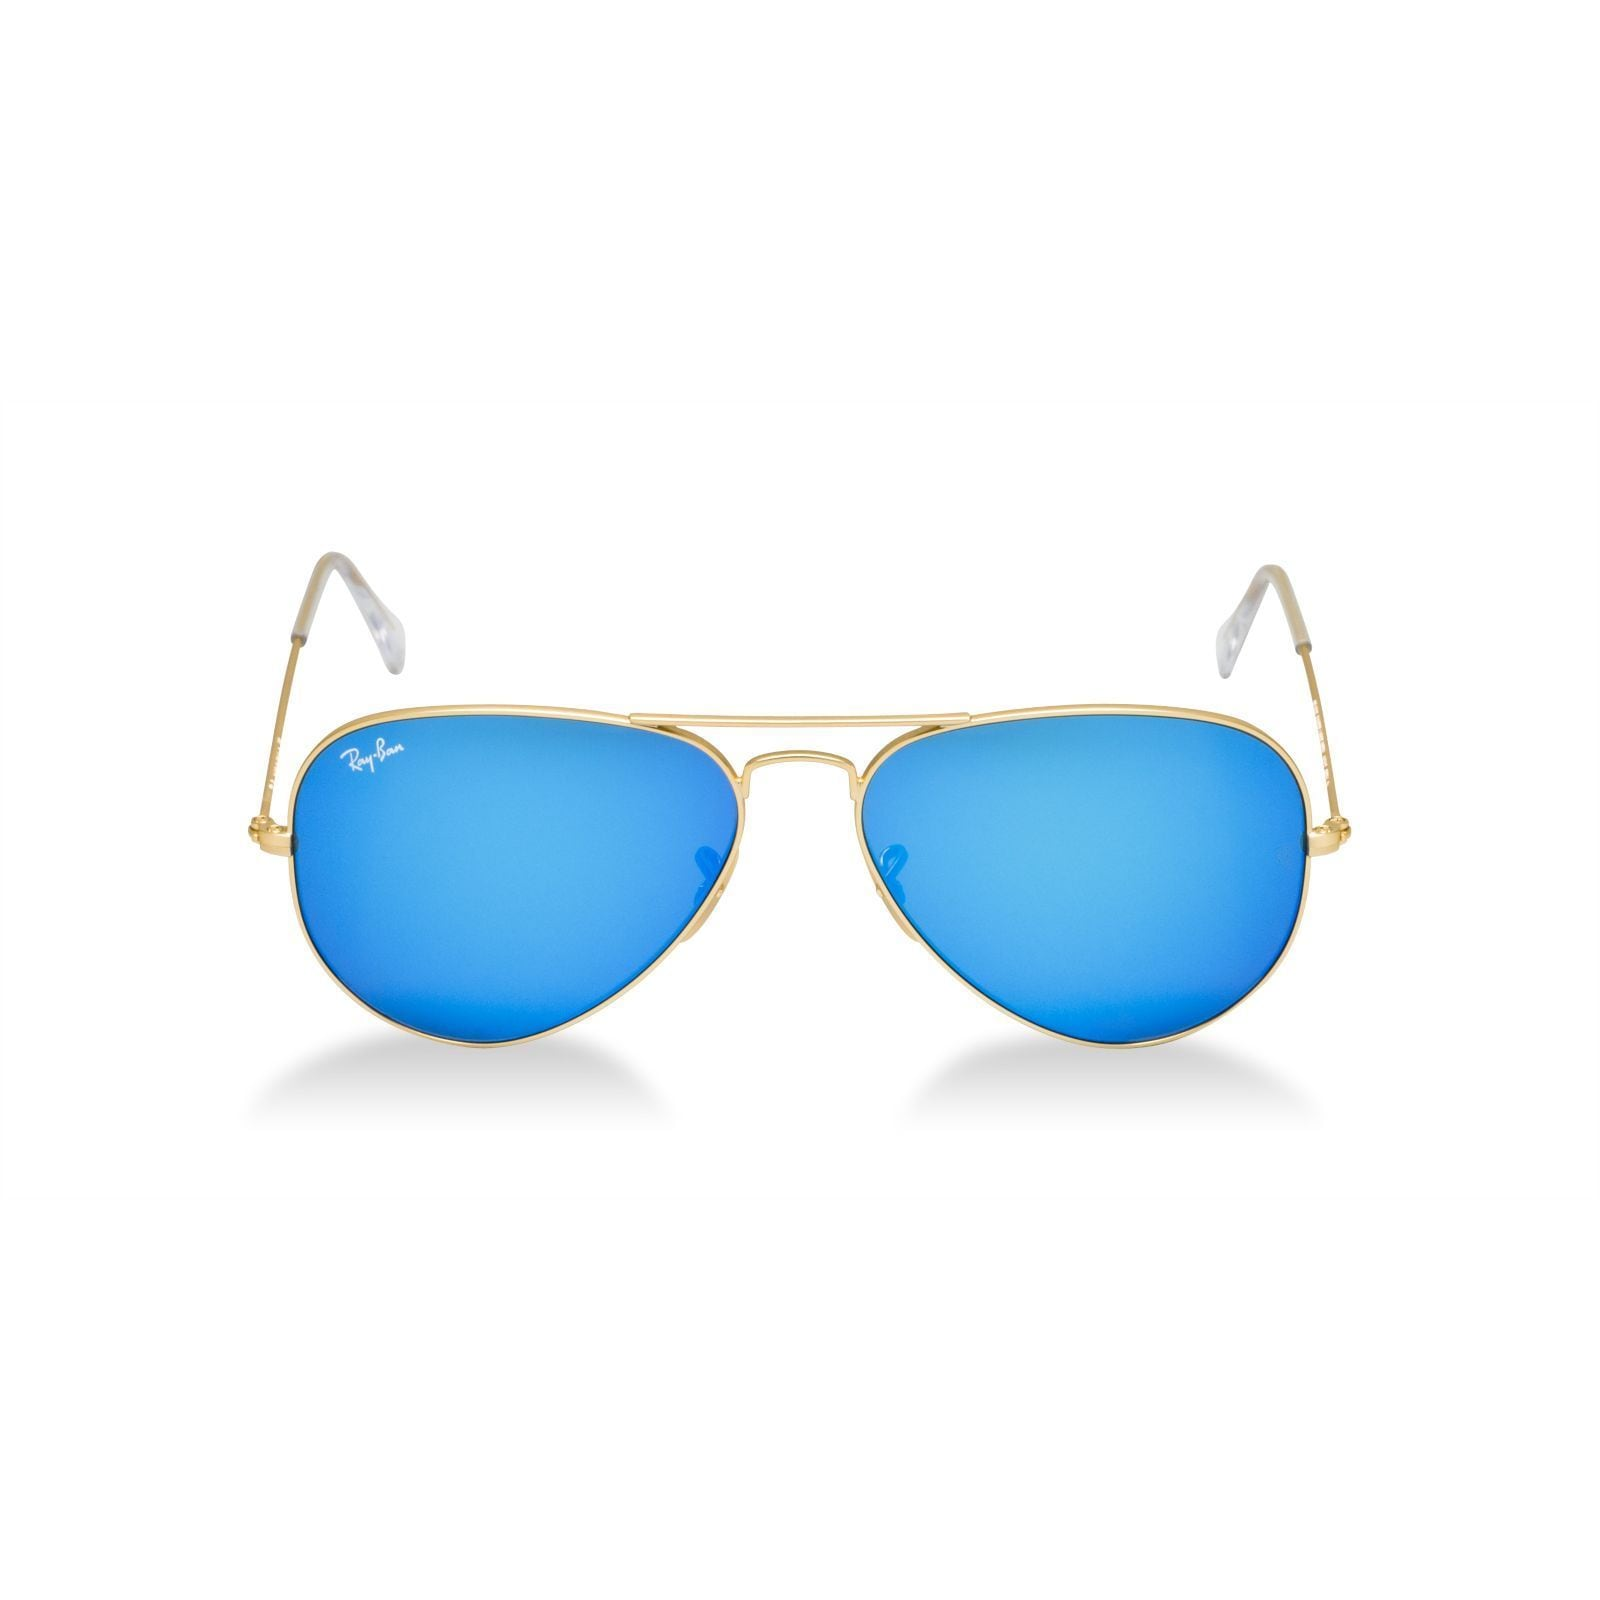 e1eca1fe70 Shop Ray- Ban Aviator RB 3205 Unisex Gold Frame Blue Mirror Lens Sunglasses  - Free Shipping Today - Overstock - 9348681